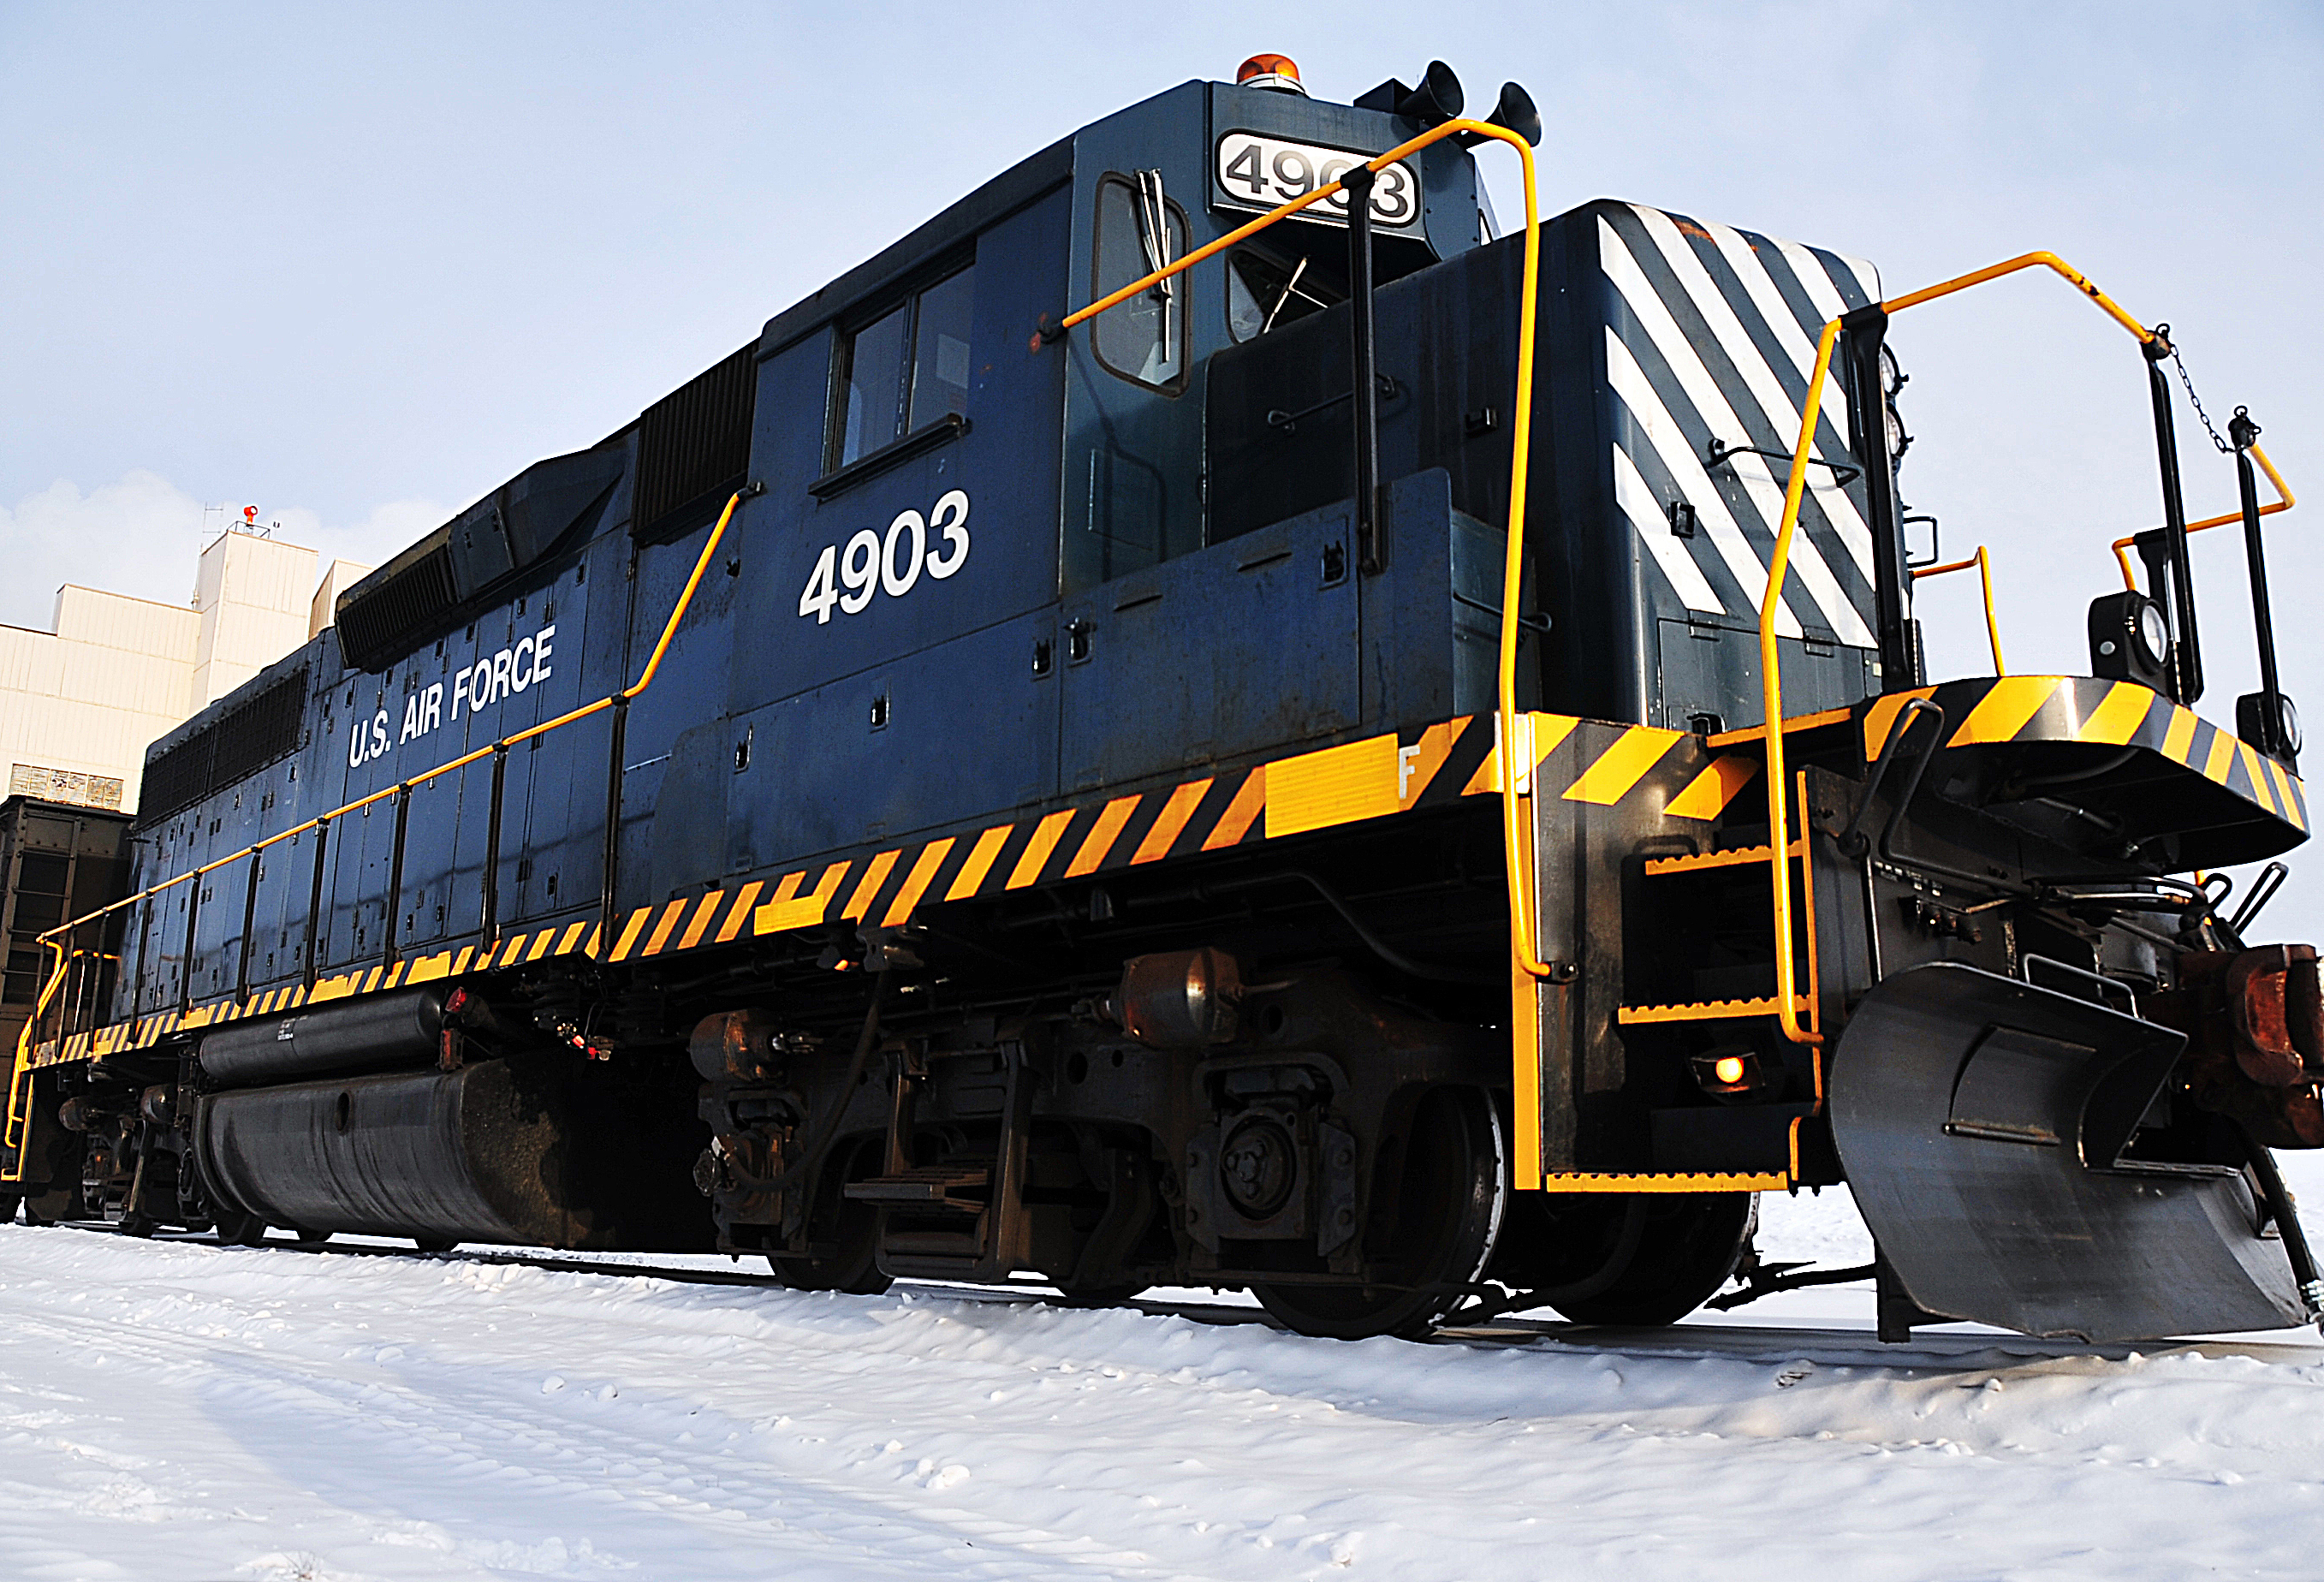 Electro Motive Diesel >> File Gp 40 Electromotive Diesel Locomotive Jpg Wikimedia Commons